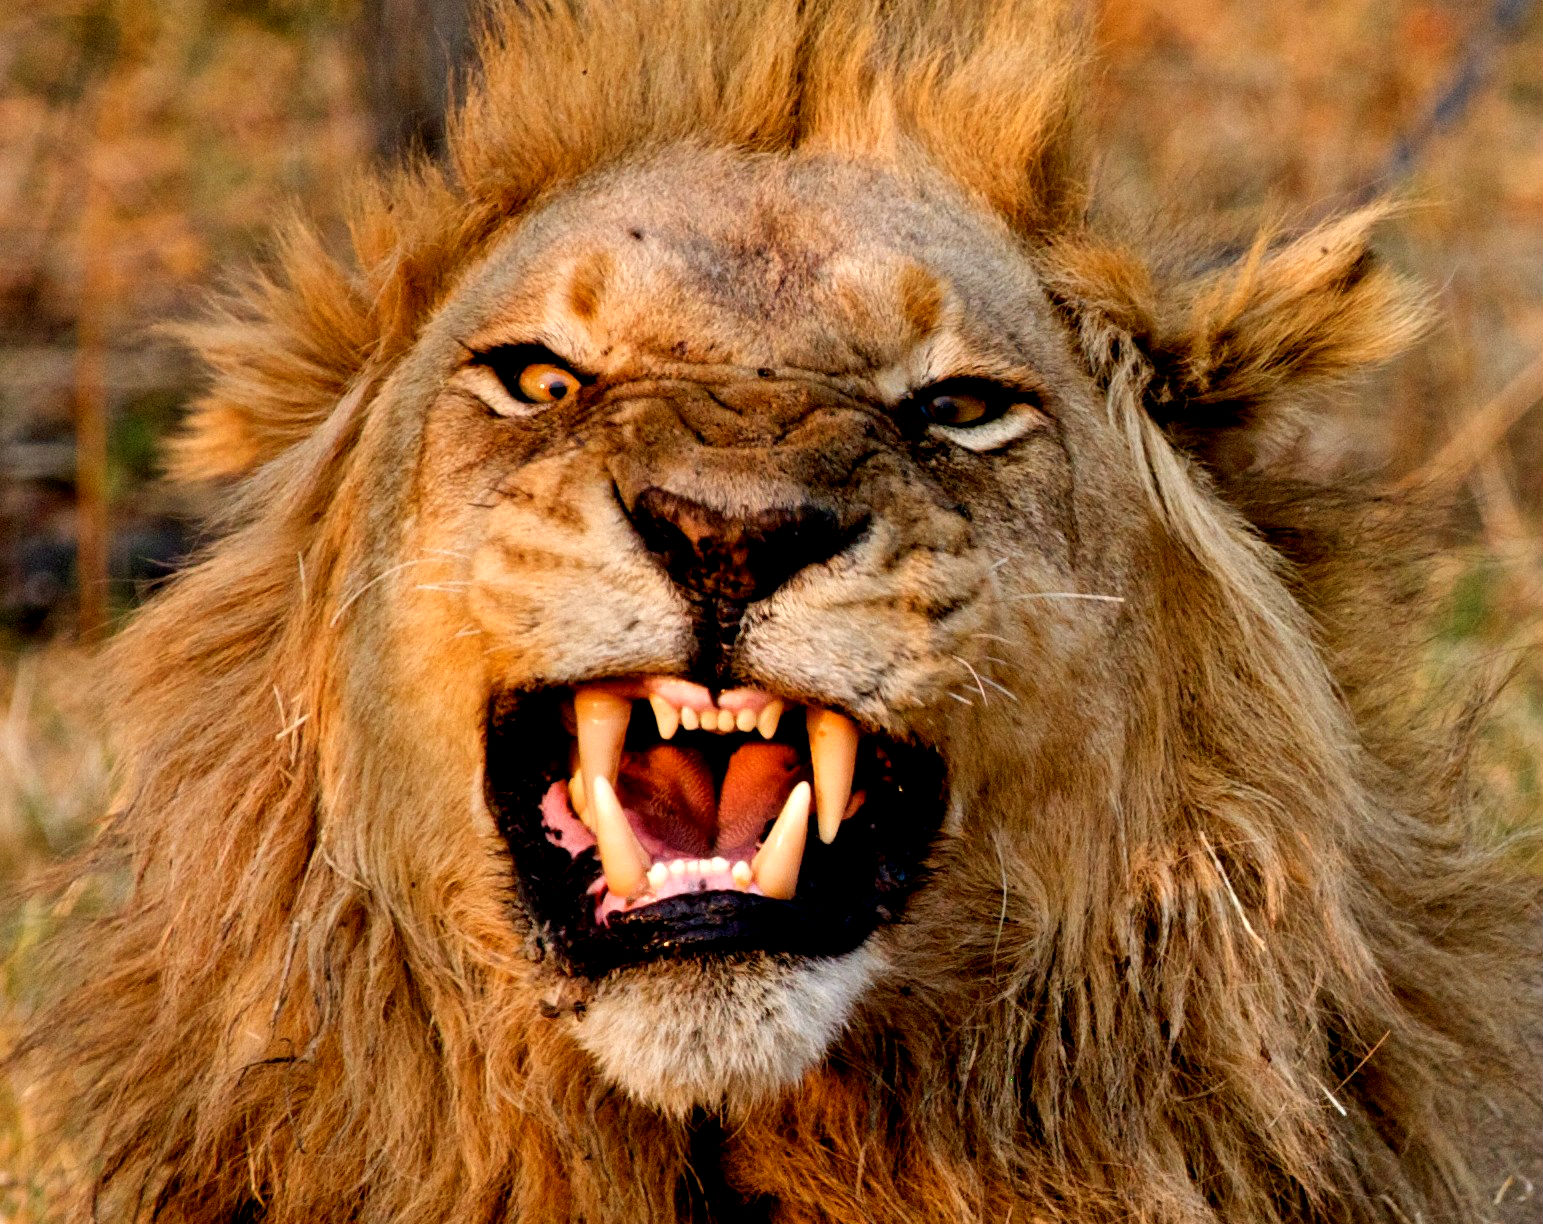 LION cat predator rw wallpaper | 1543x1224 | 194824 ...